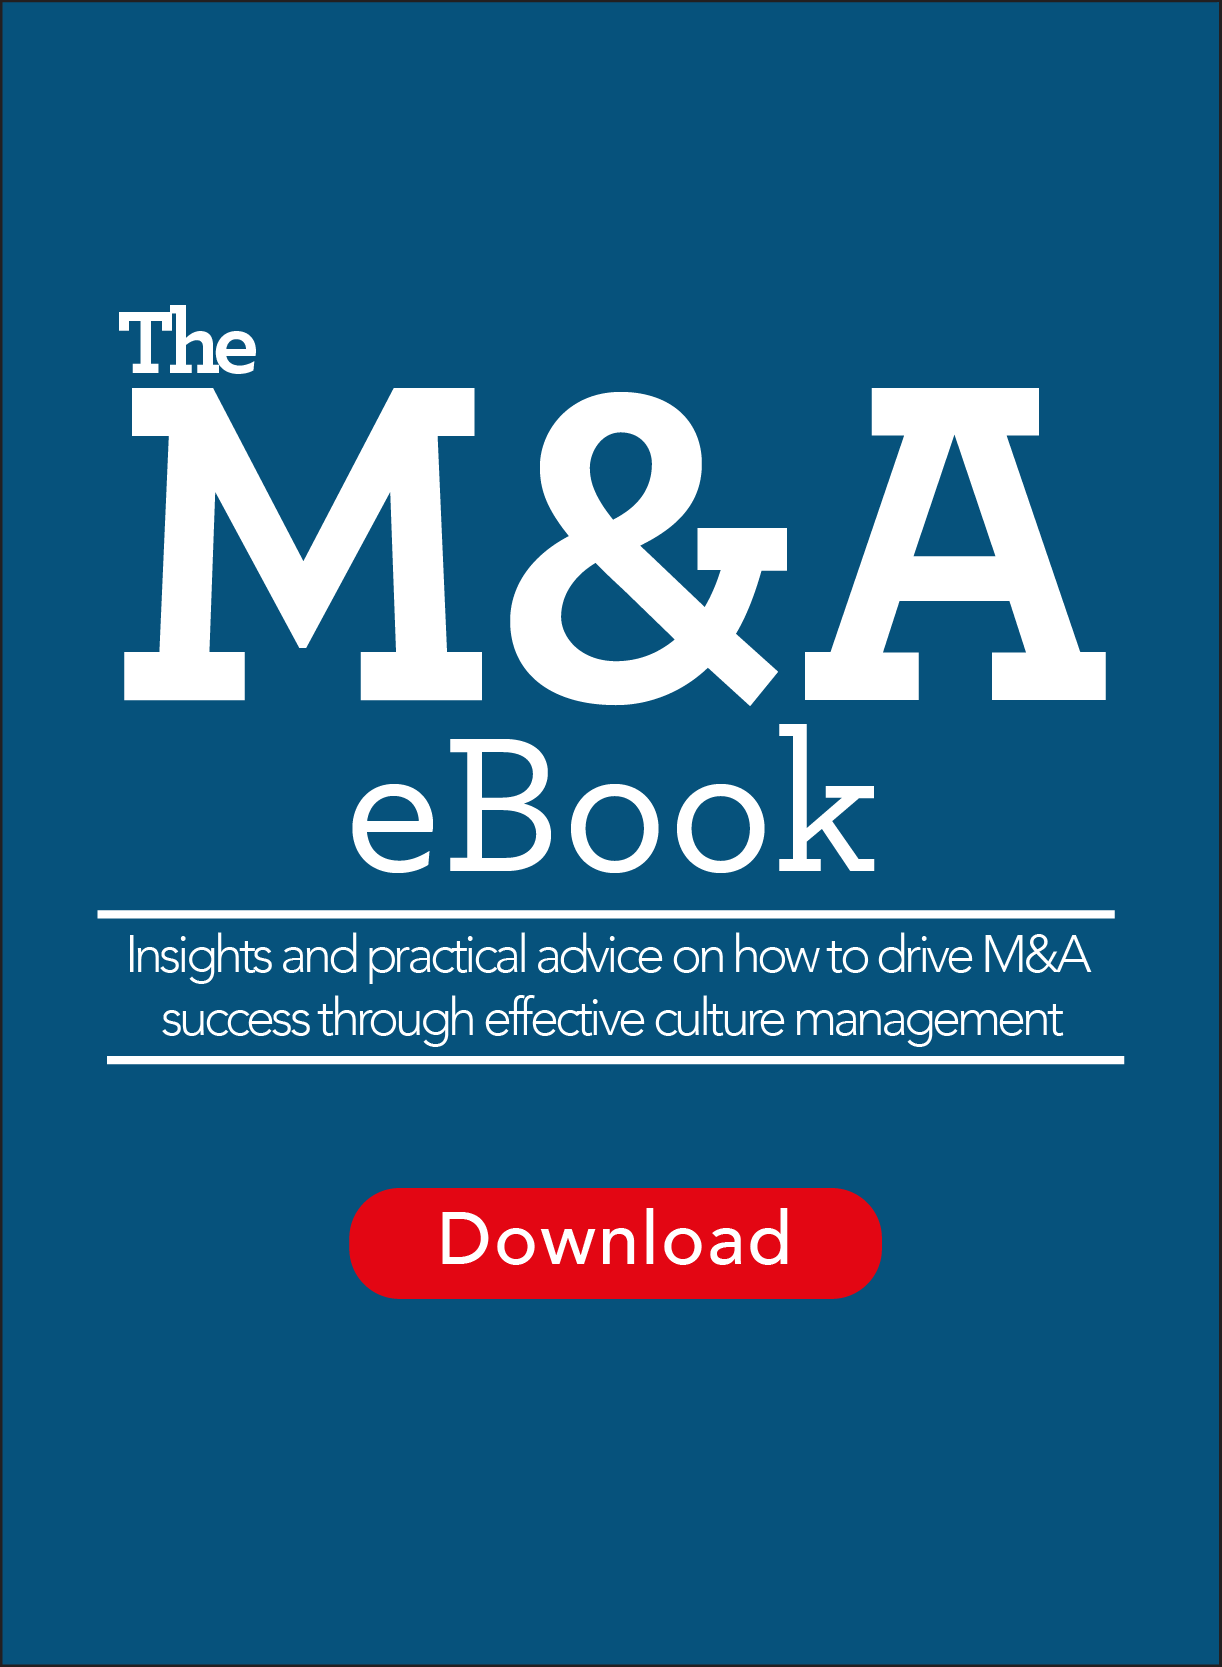 eBook M&A Ad for website Square